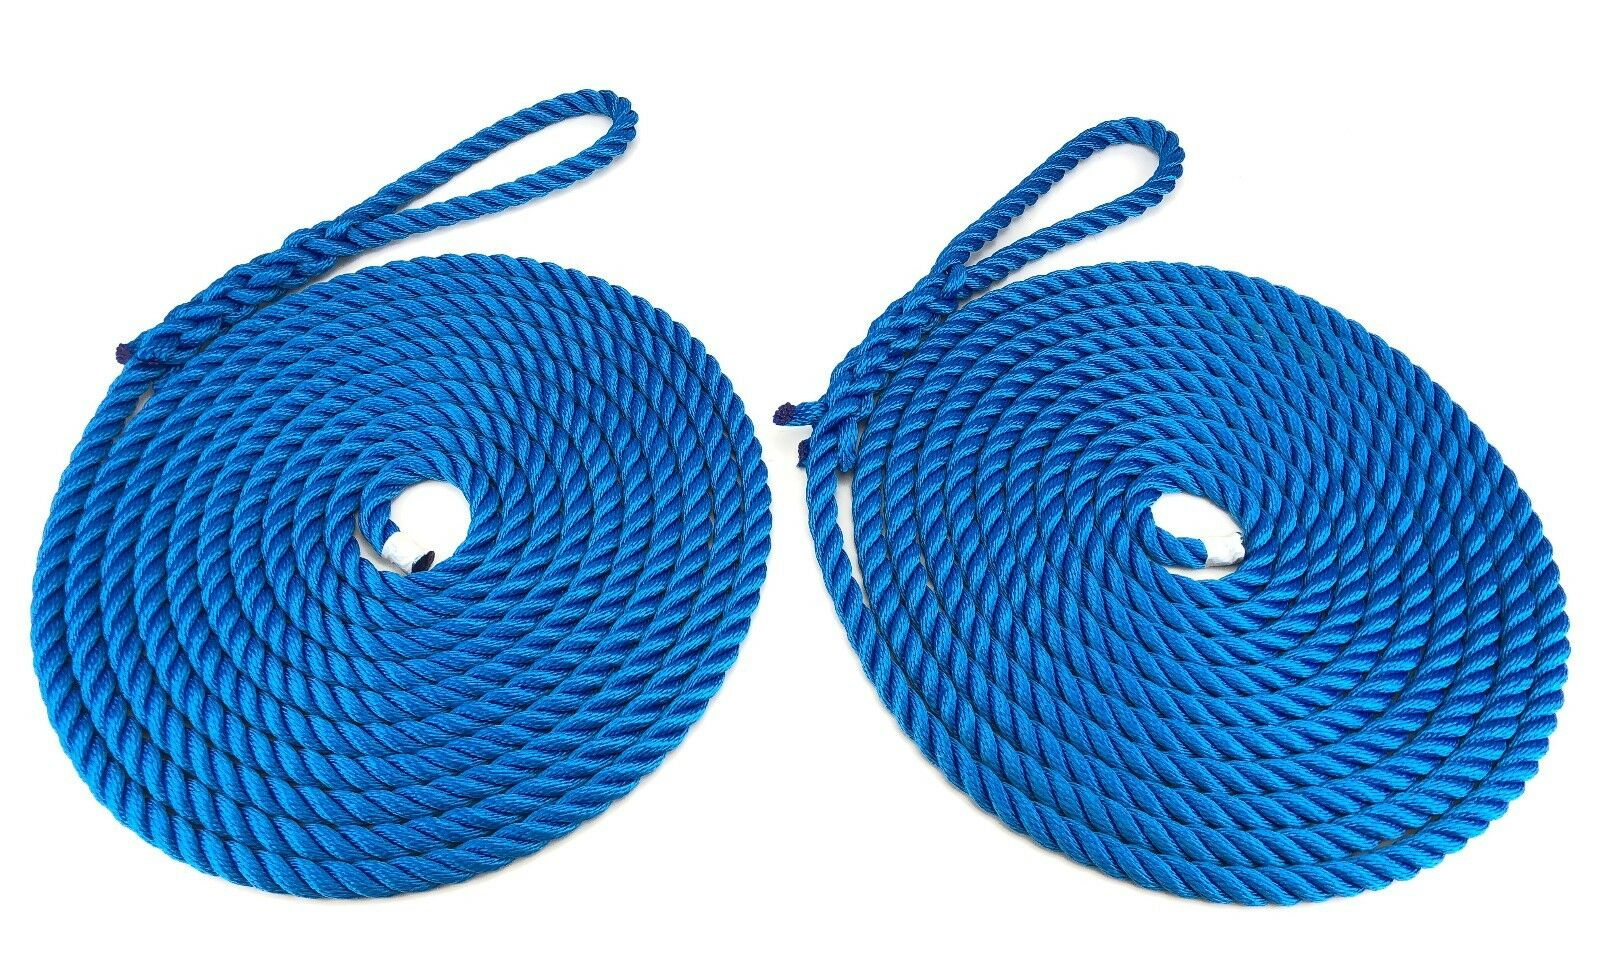 2 x 12 Metres of 16mm Royal bluee Mooring Ropes. Warps, Boat Lines, Yachts, Canal